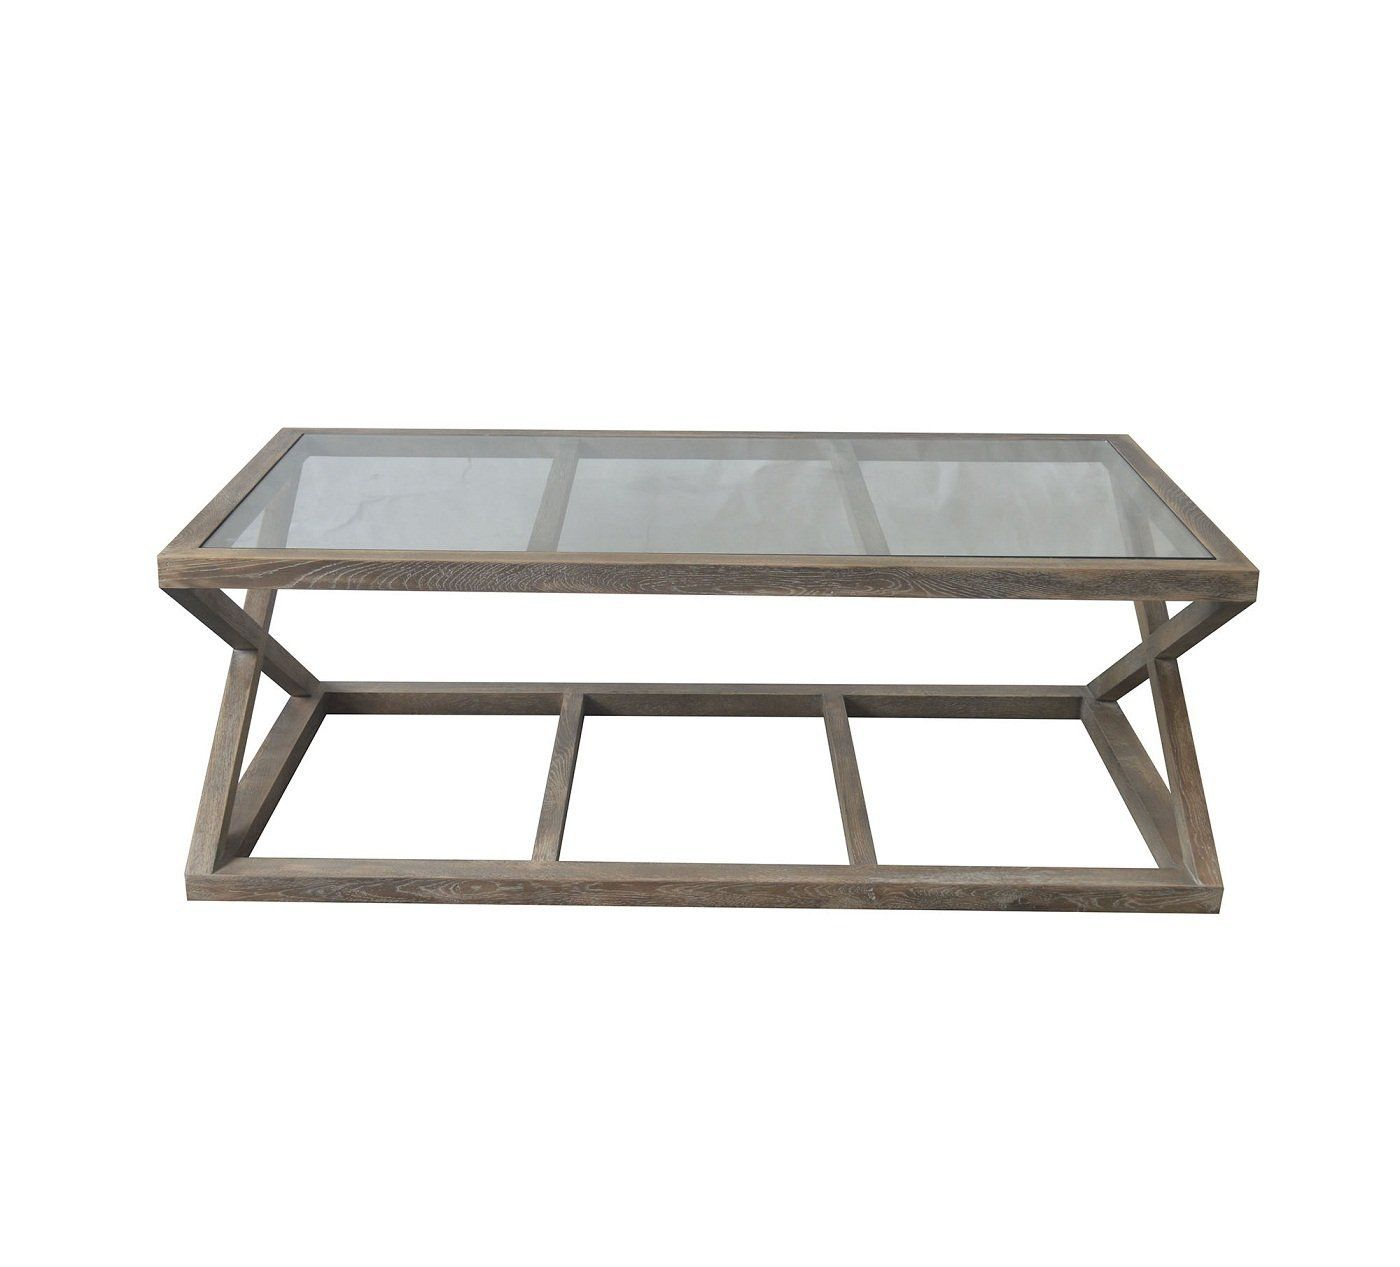 Valencia Glass Top Coffee Table White Washed Oak Allissias Attic Vintage French Style Coffee Table Glass Top Coffee Table Coffee Table White [ 1267 x 1400 Pixel ]